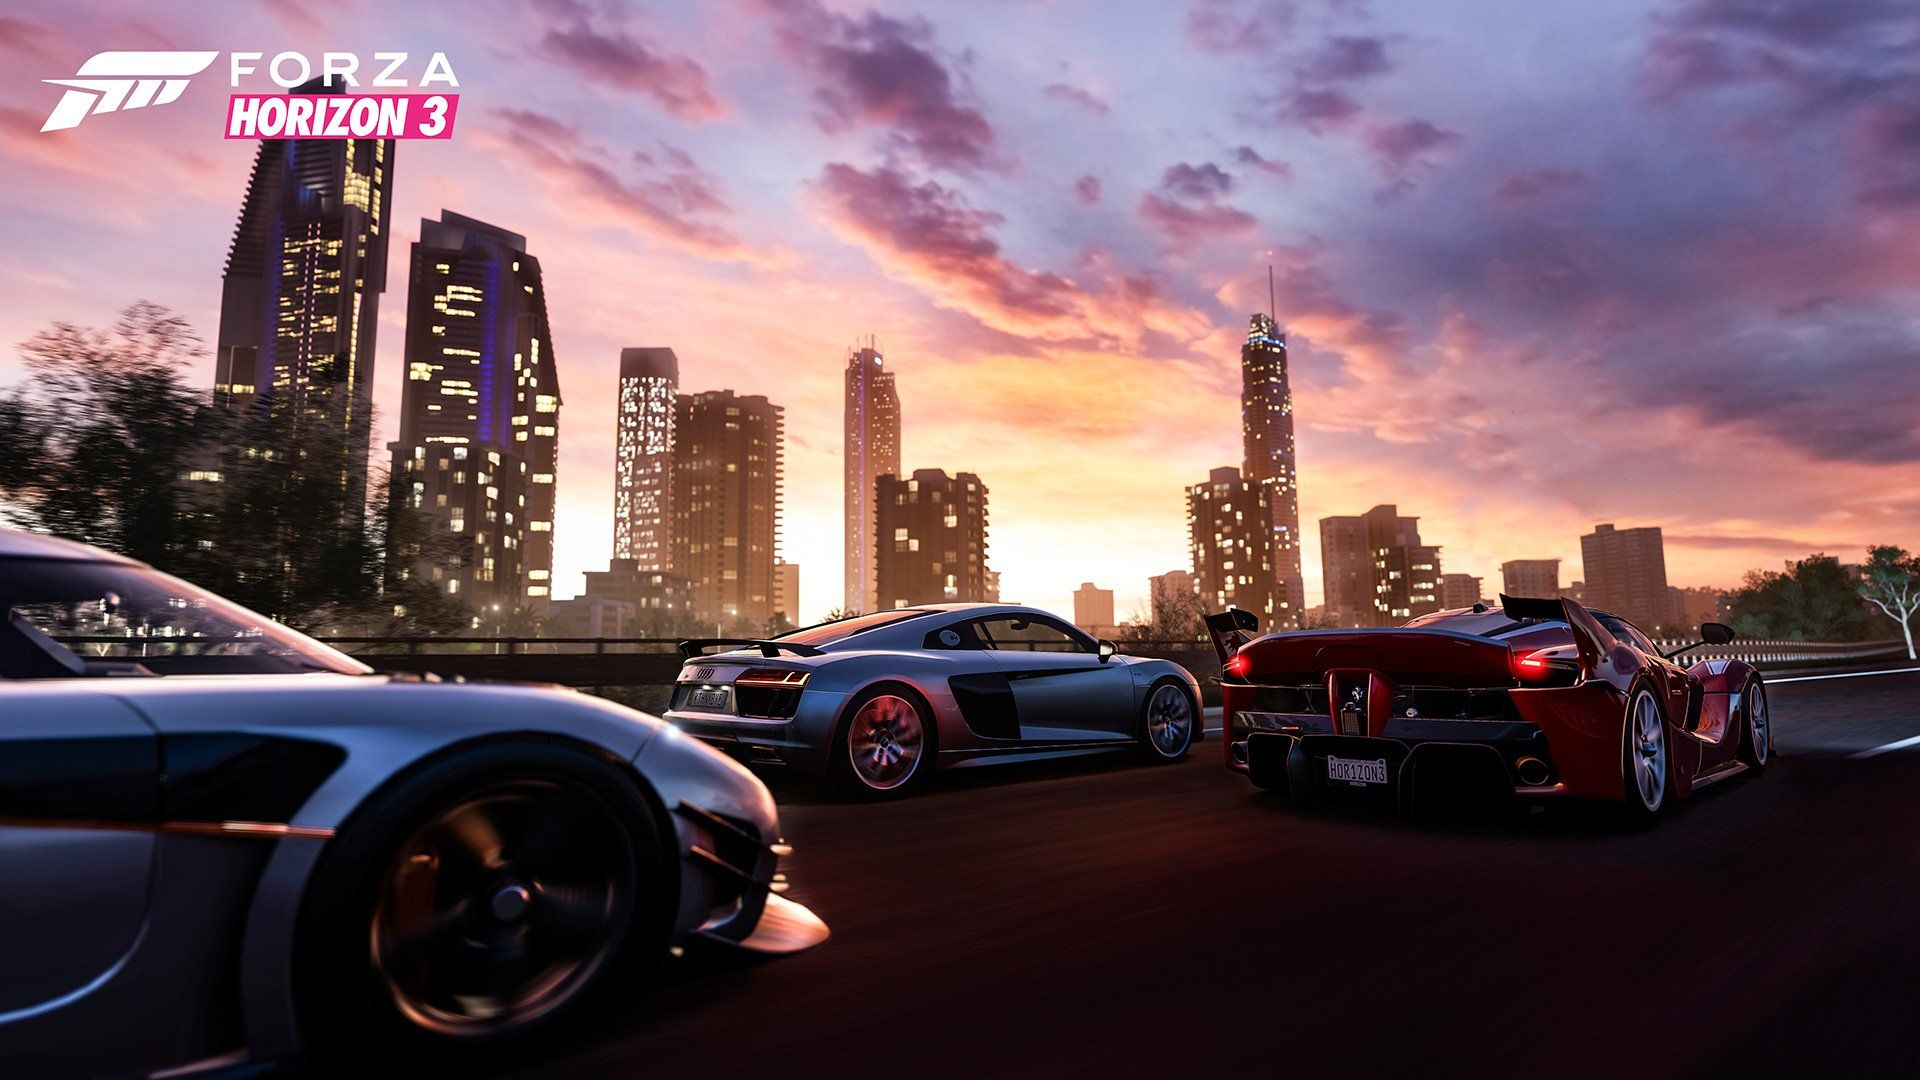 50 Forza Wallpapers   Download at WallpaperBro 1920x1080